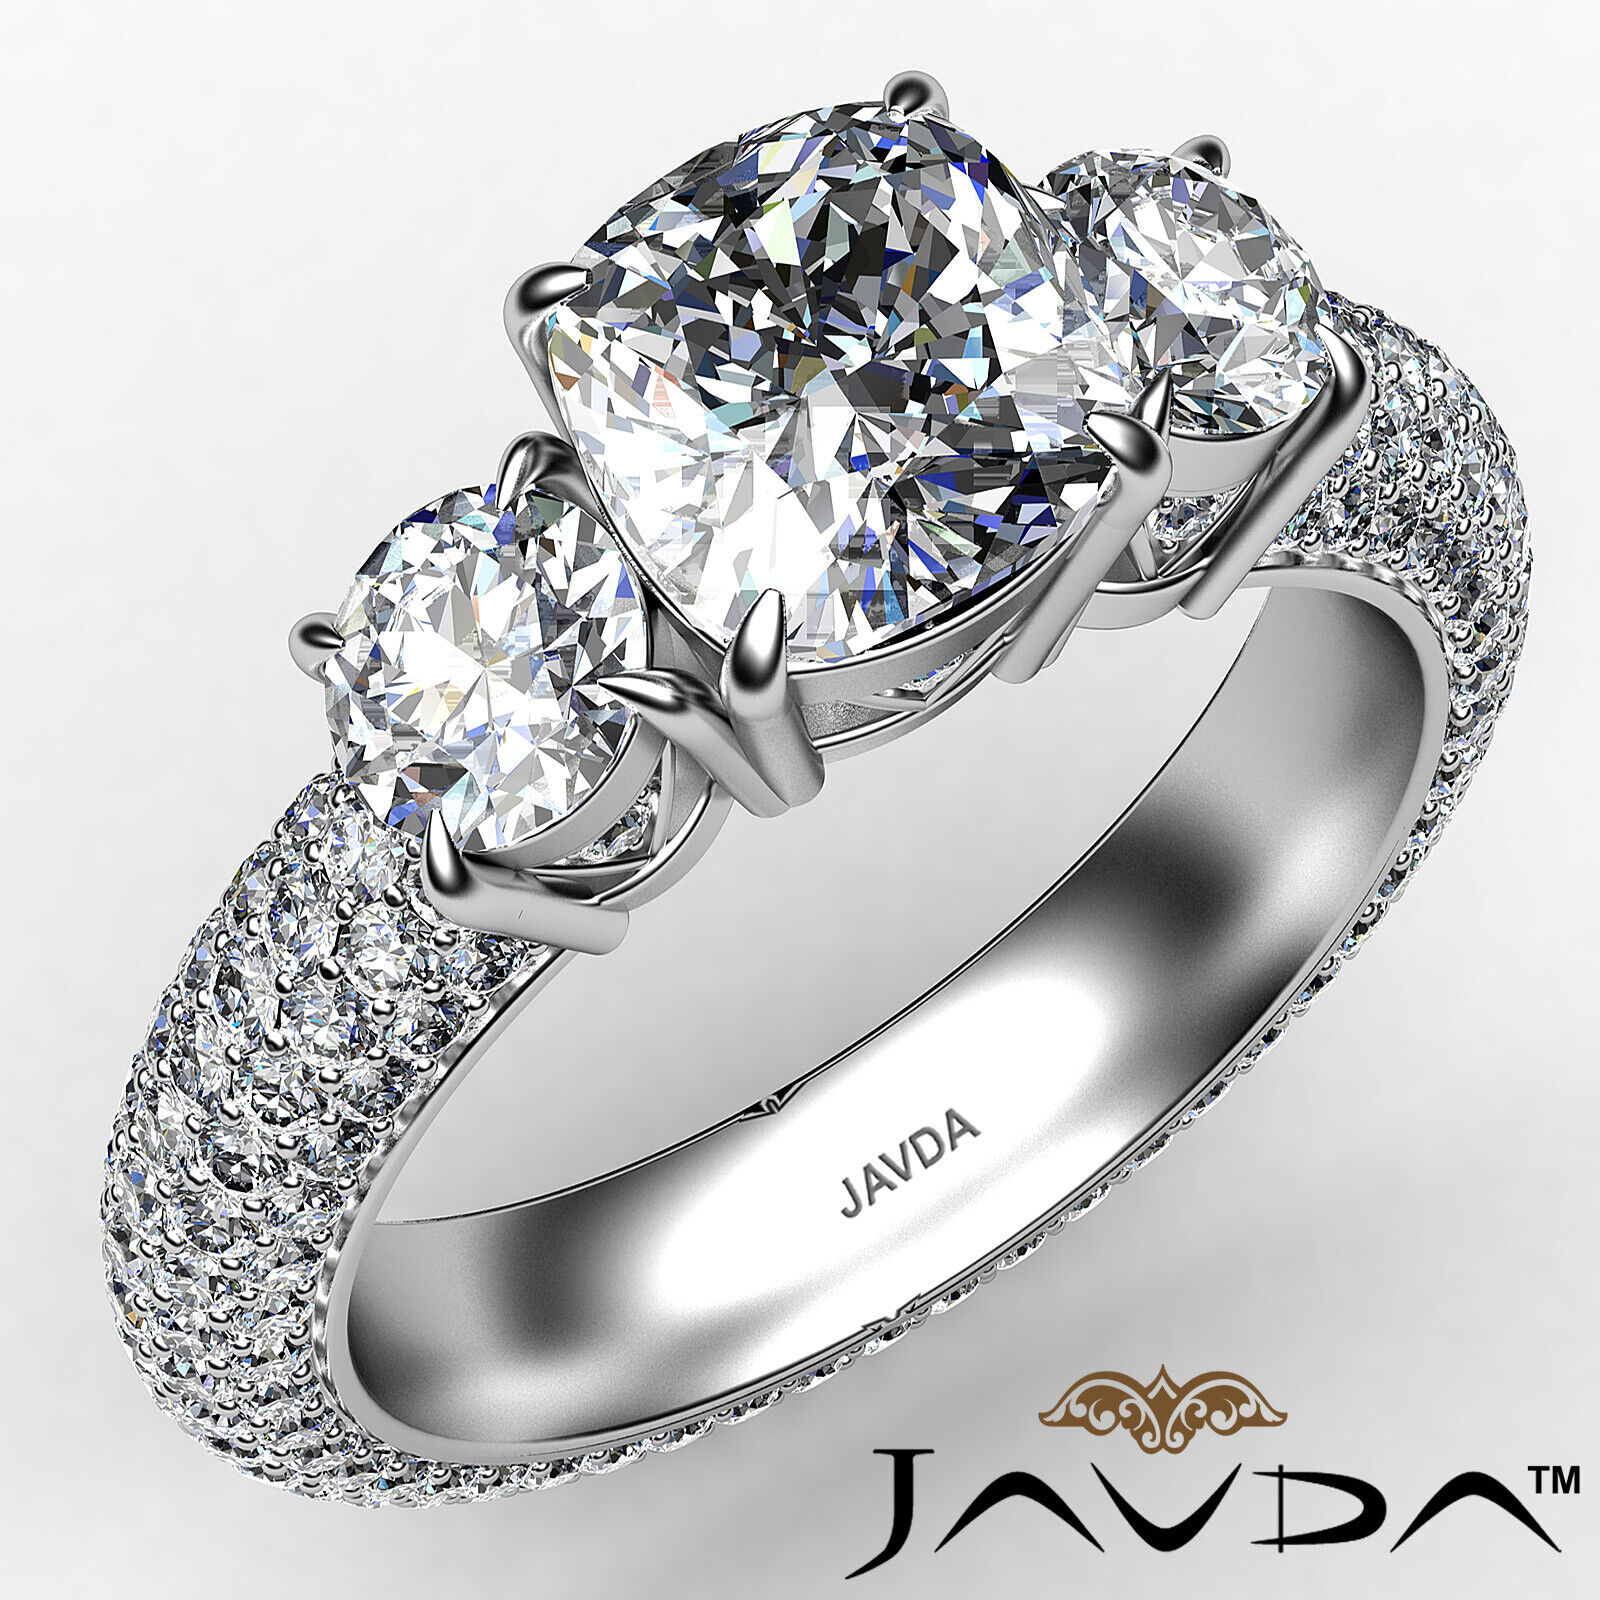 Cushion Diamond Engagement Ring Certified by GIA, G Color & SI1 clarity 3.44 ctw